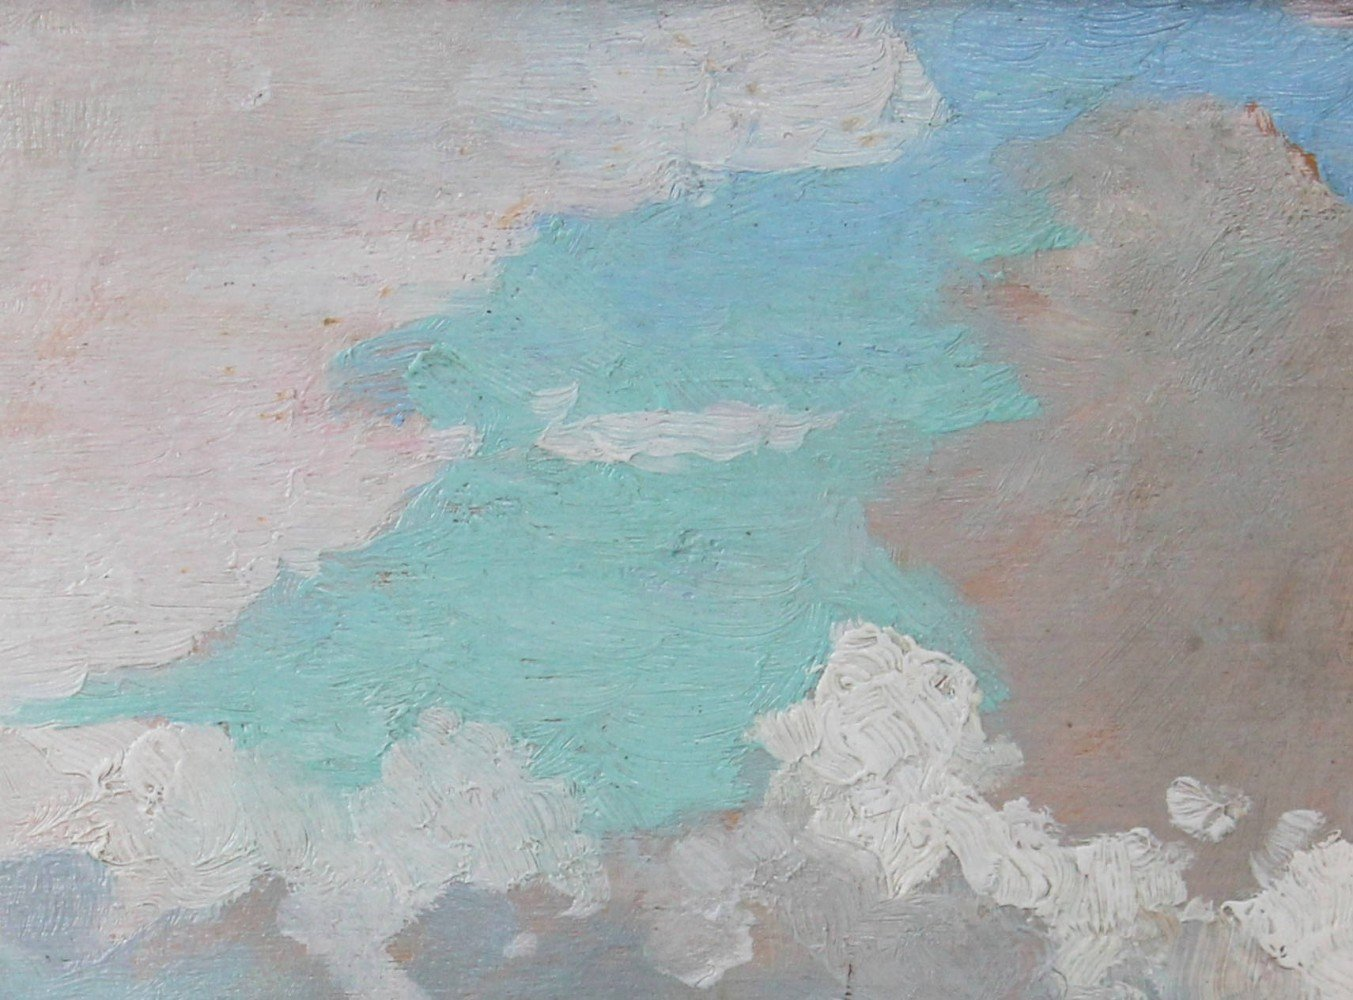 Clearing Clouds by Elisha Kent Kane Wetherill